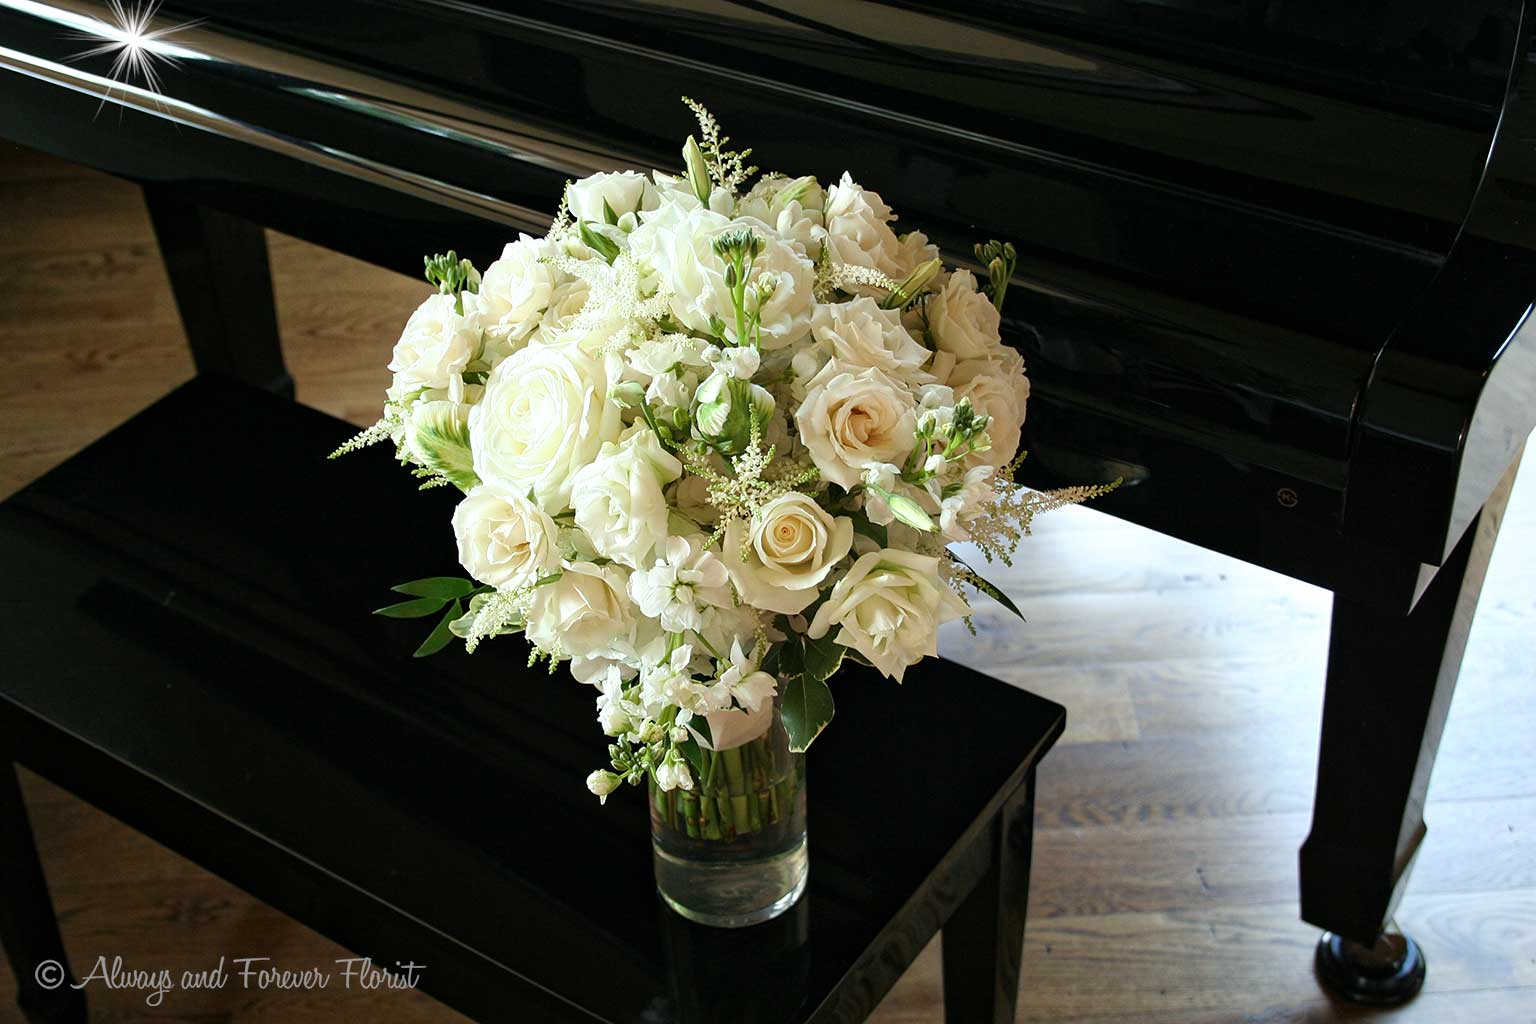 White Bridal Bouquet On Piano Bench